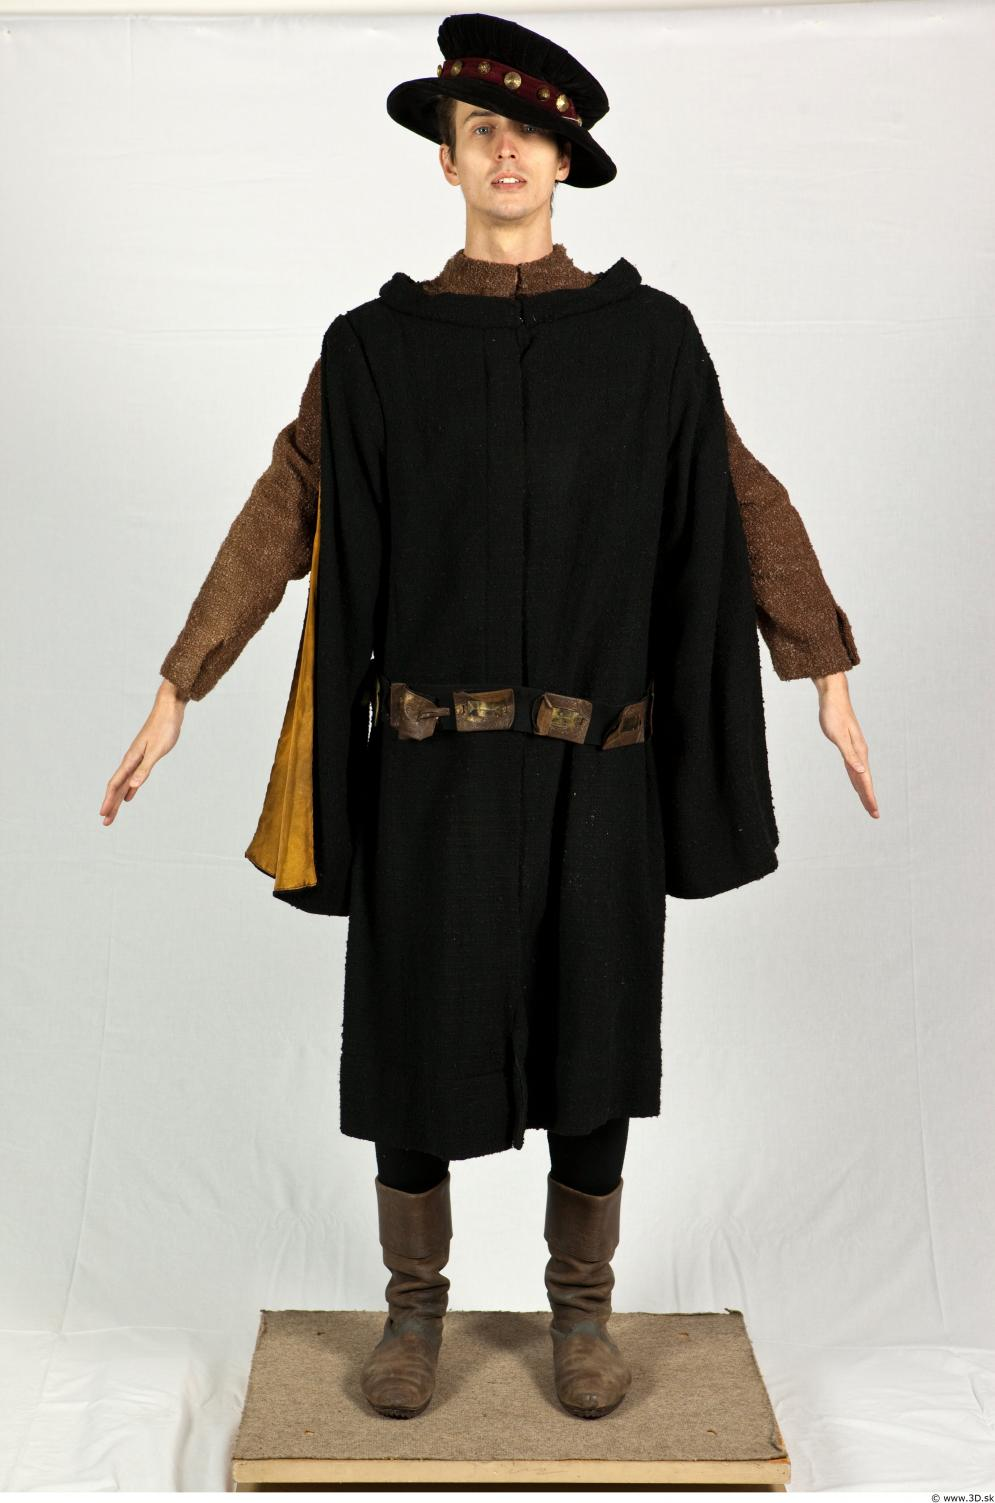 Image from Mediaval costume photo references - 518930costumes570041.jpg